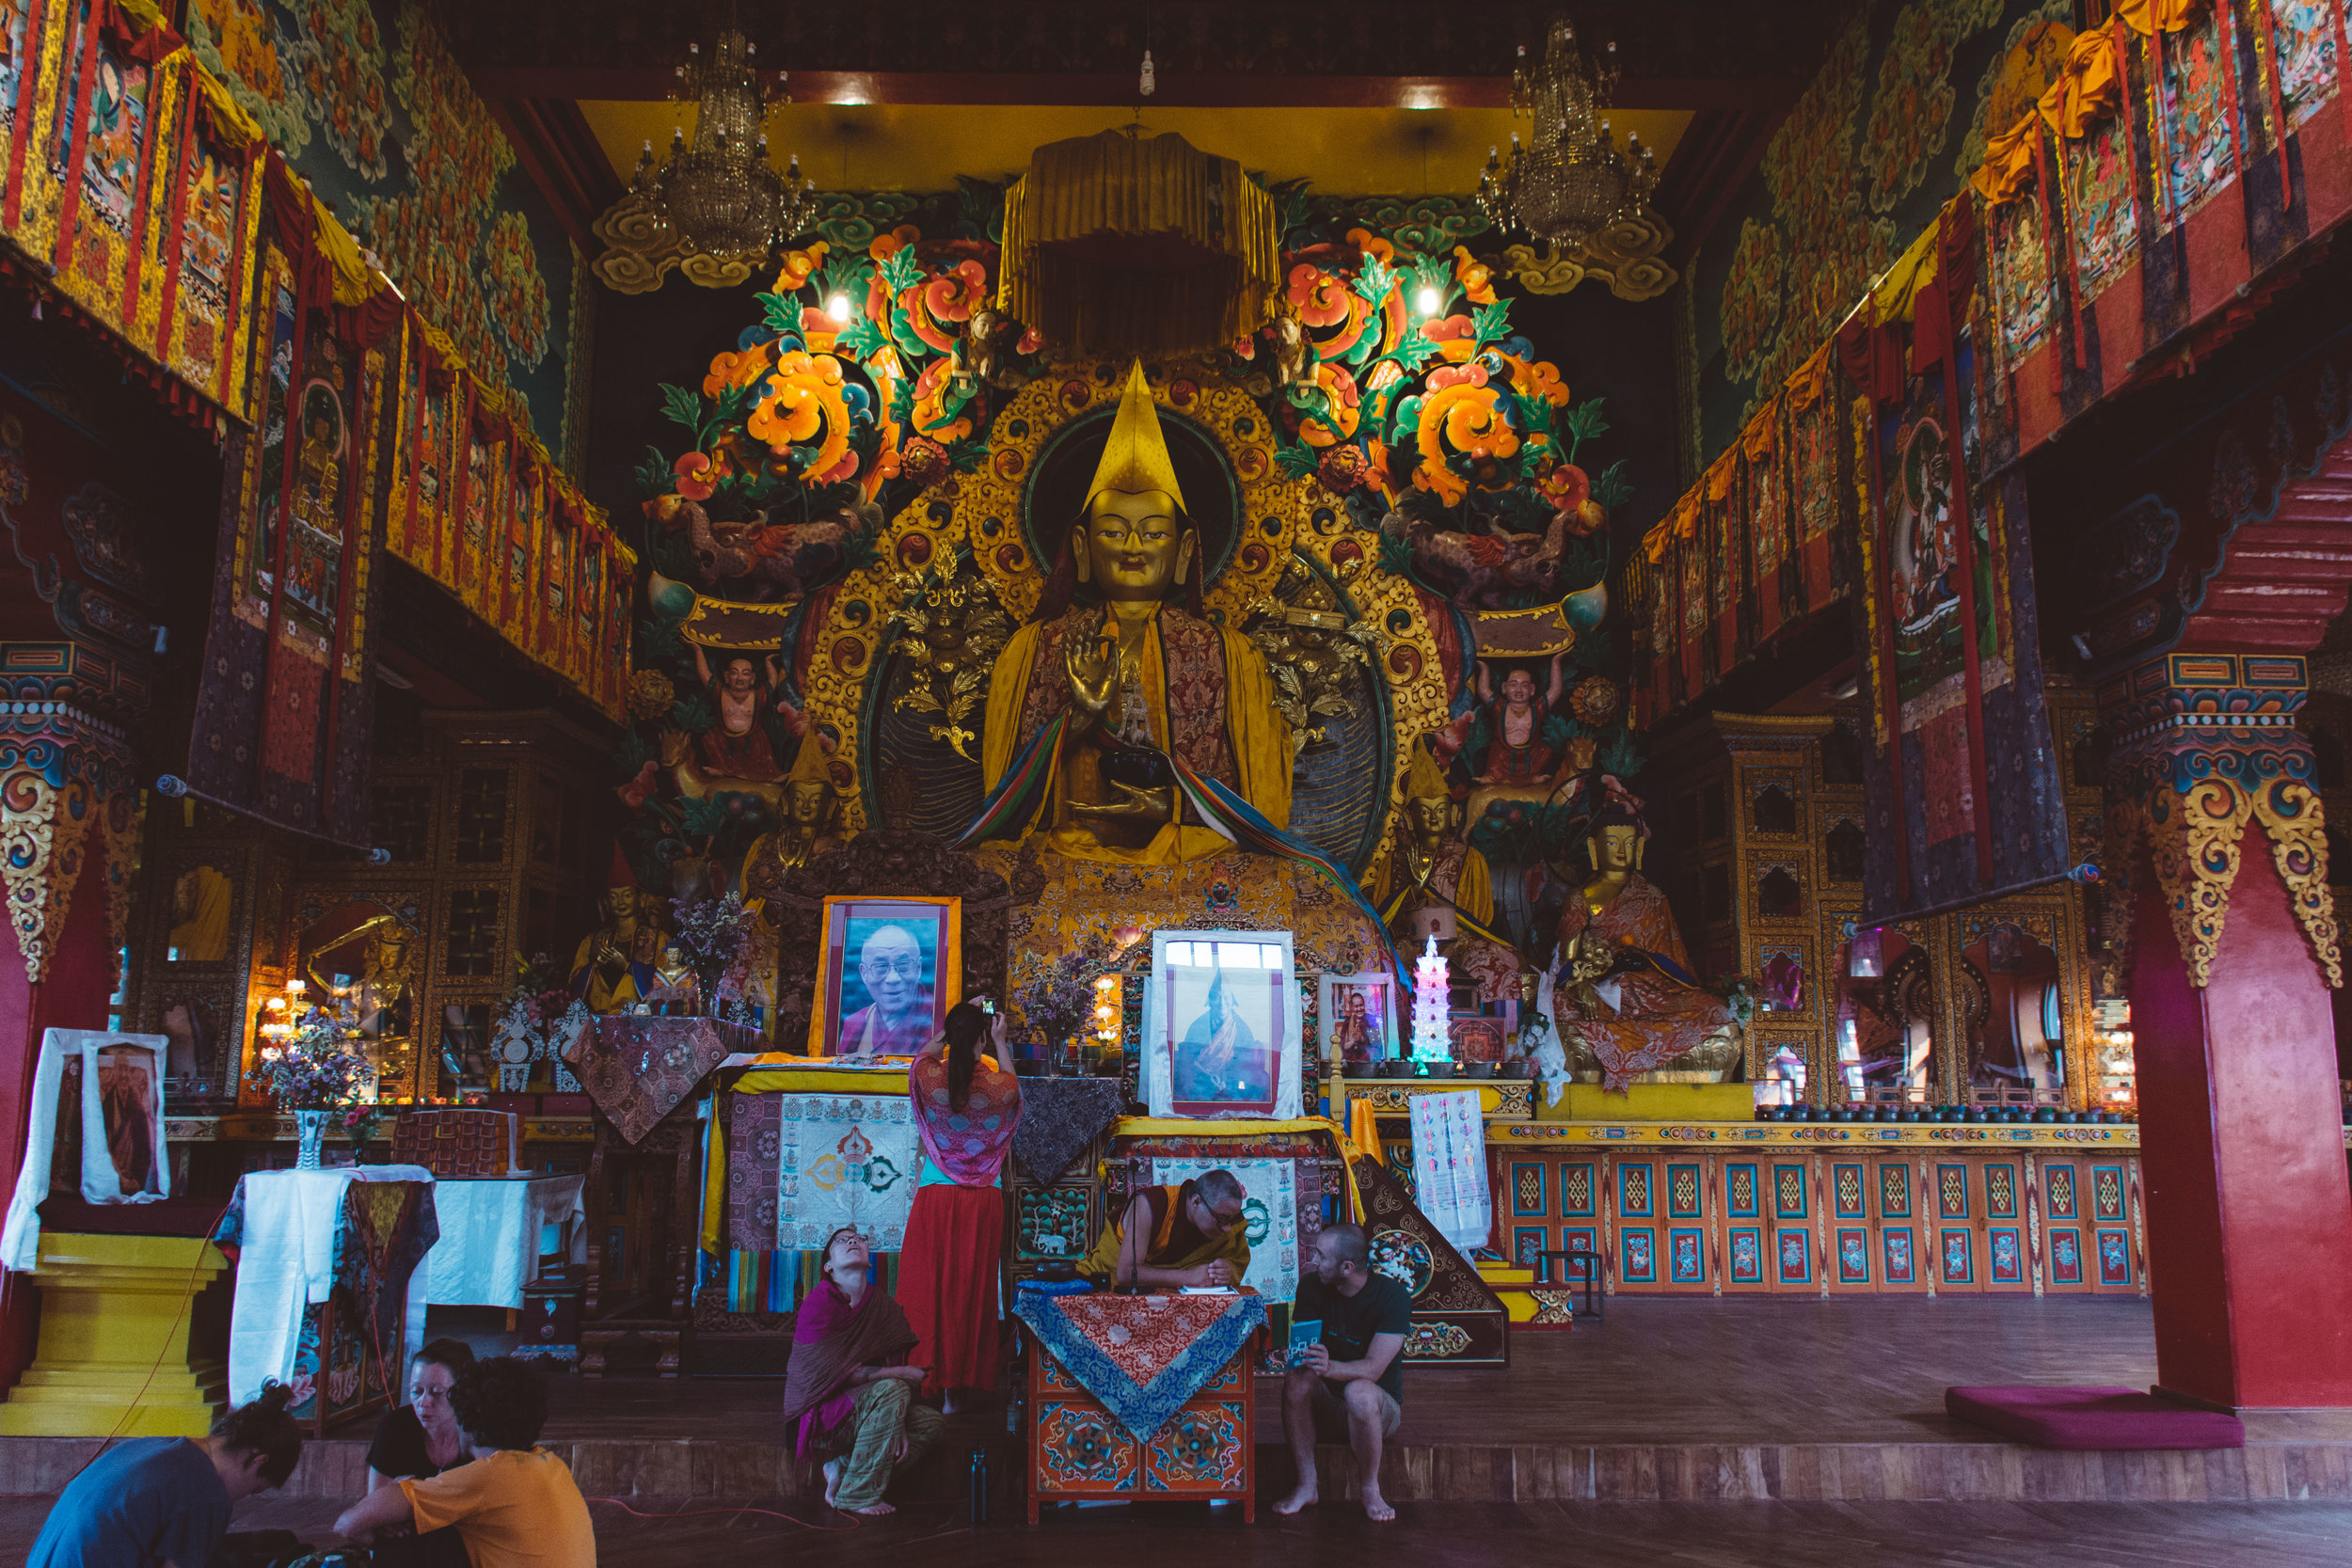 The Gompa - A hall for instruction, meditation, and celebration